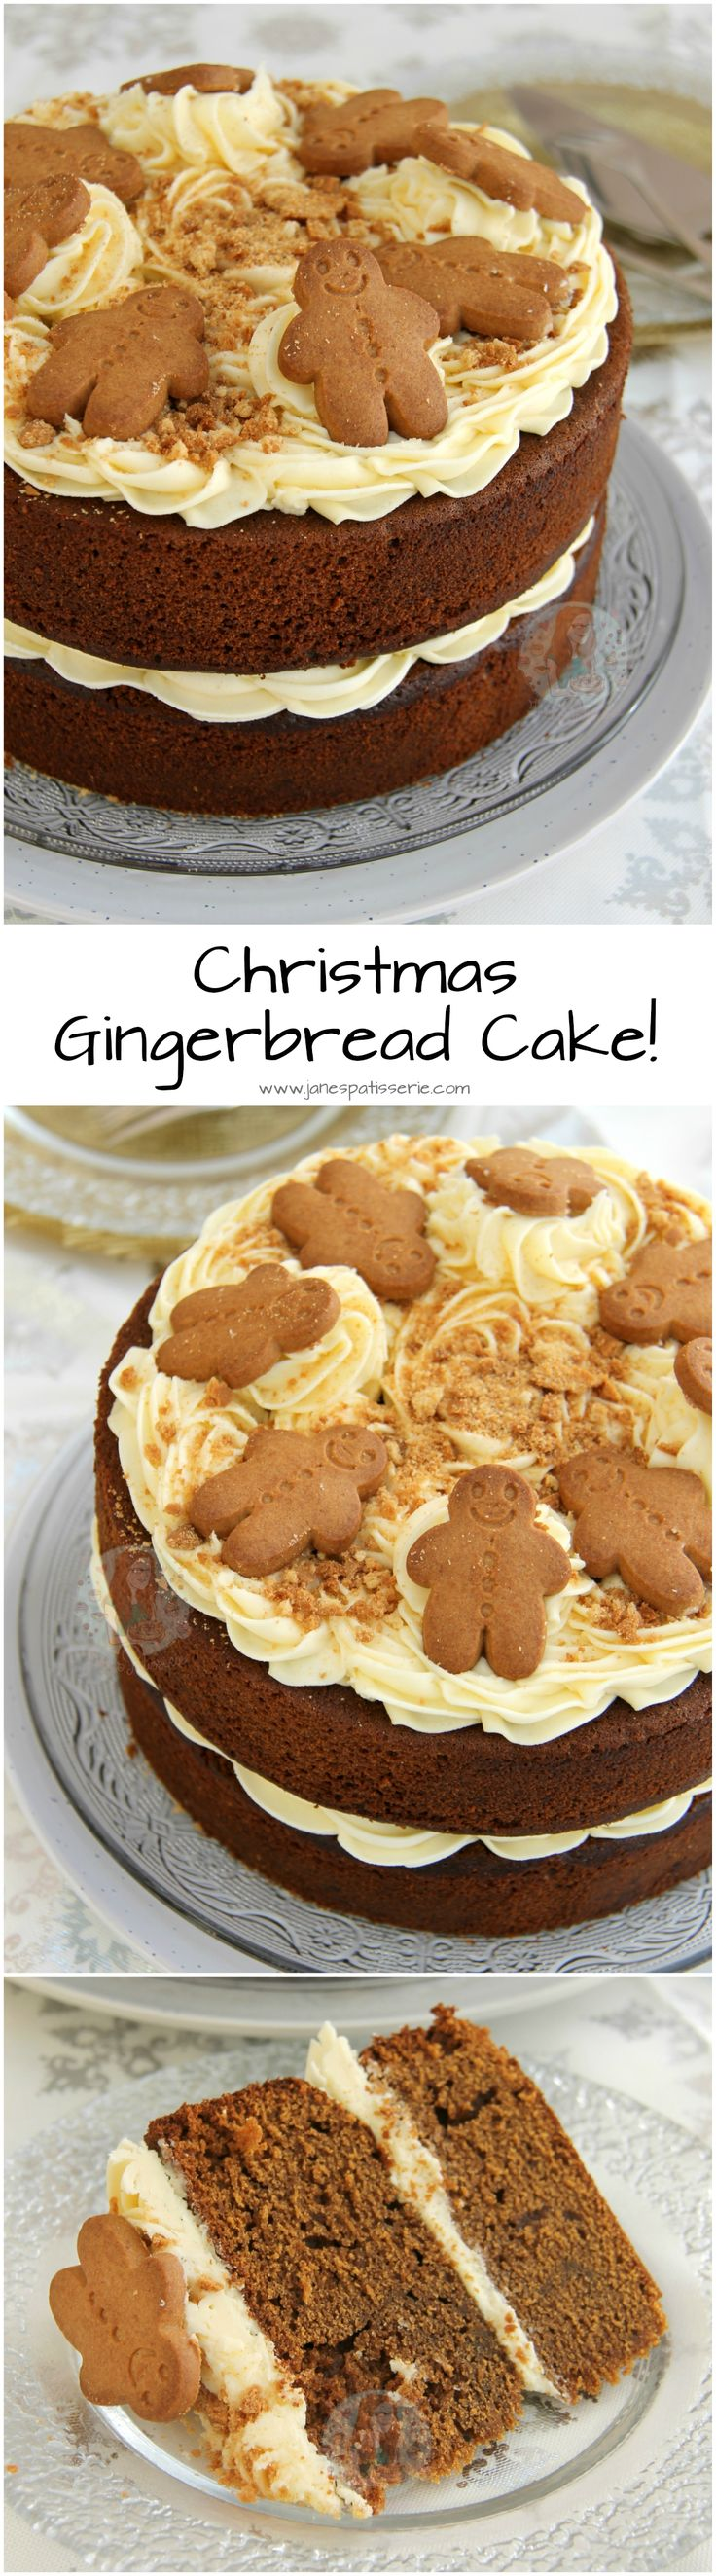 Christmas Gingerbread Cake!! A Two-Layer Gingerbread Cake with Ginger Buttercream Frosting.. the perfect Christmas cake for the Festive Season!